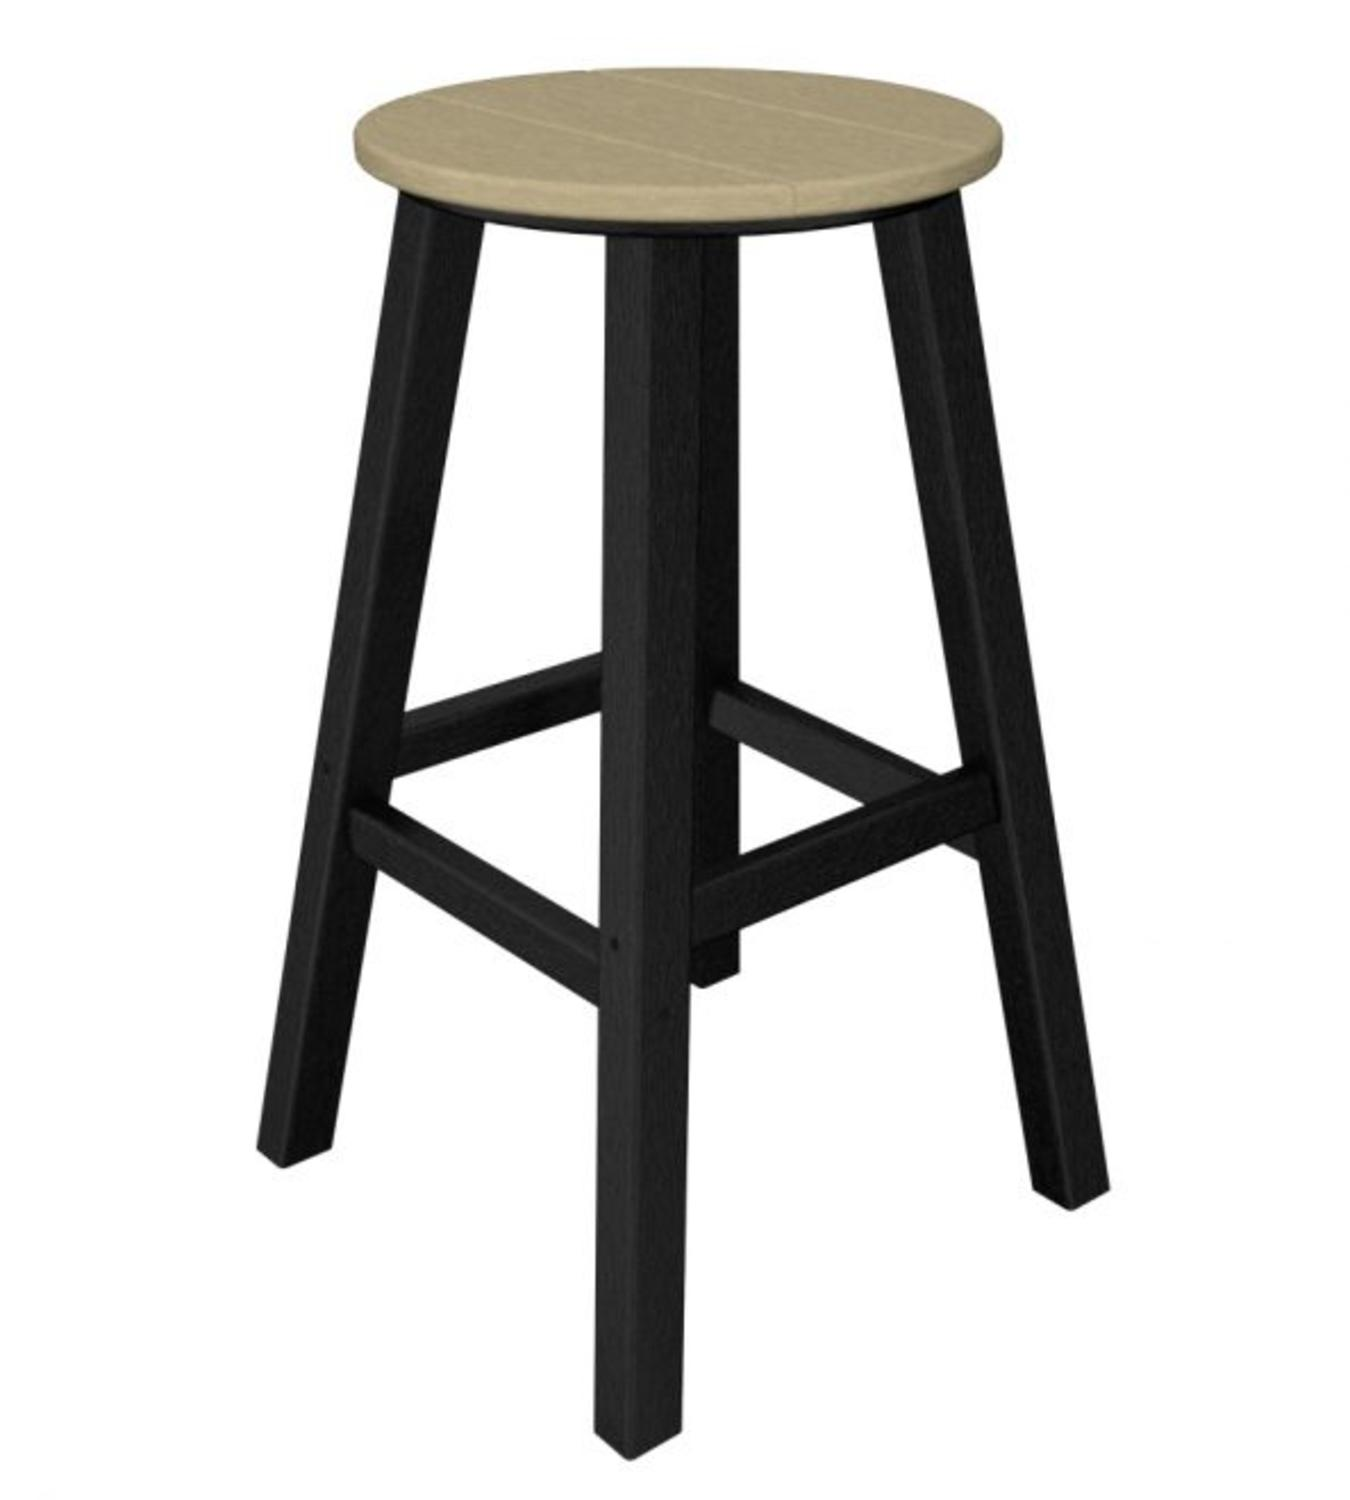 """29.25"""" Recycled Earth-Friendly Patio Bar Stool - Sand Brown w/ Black Frame"""